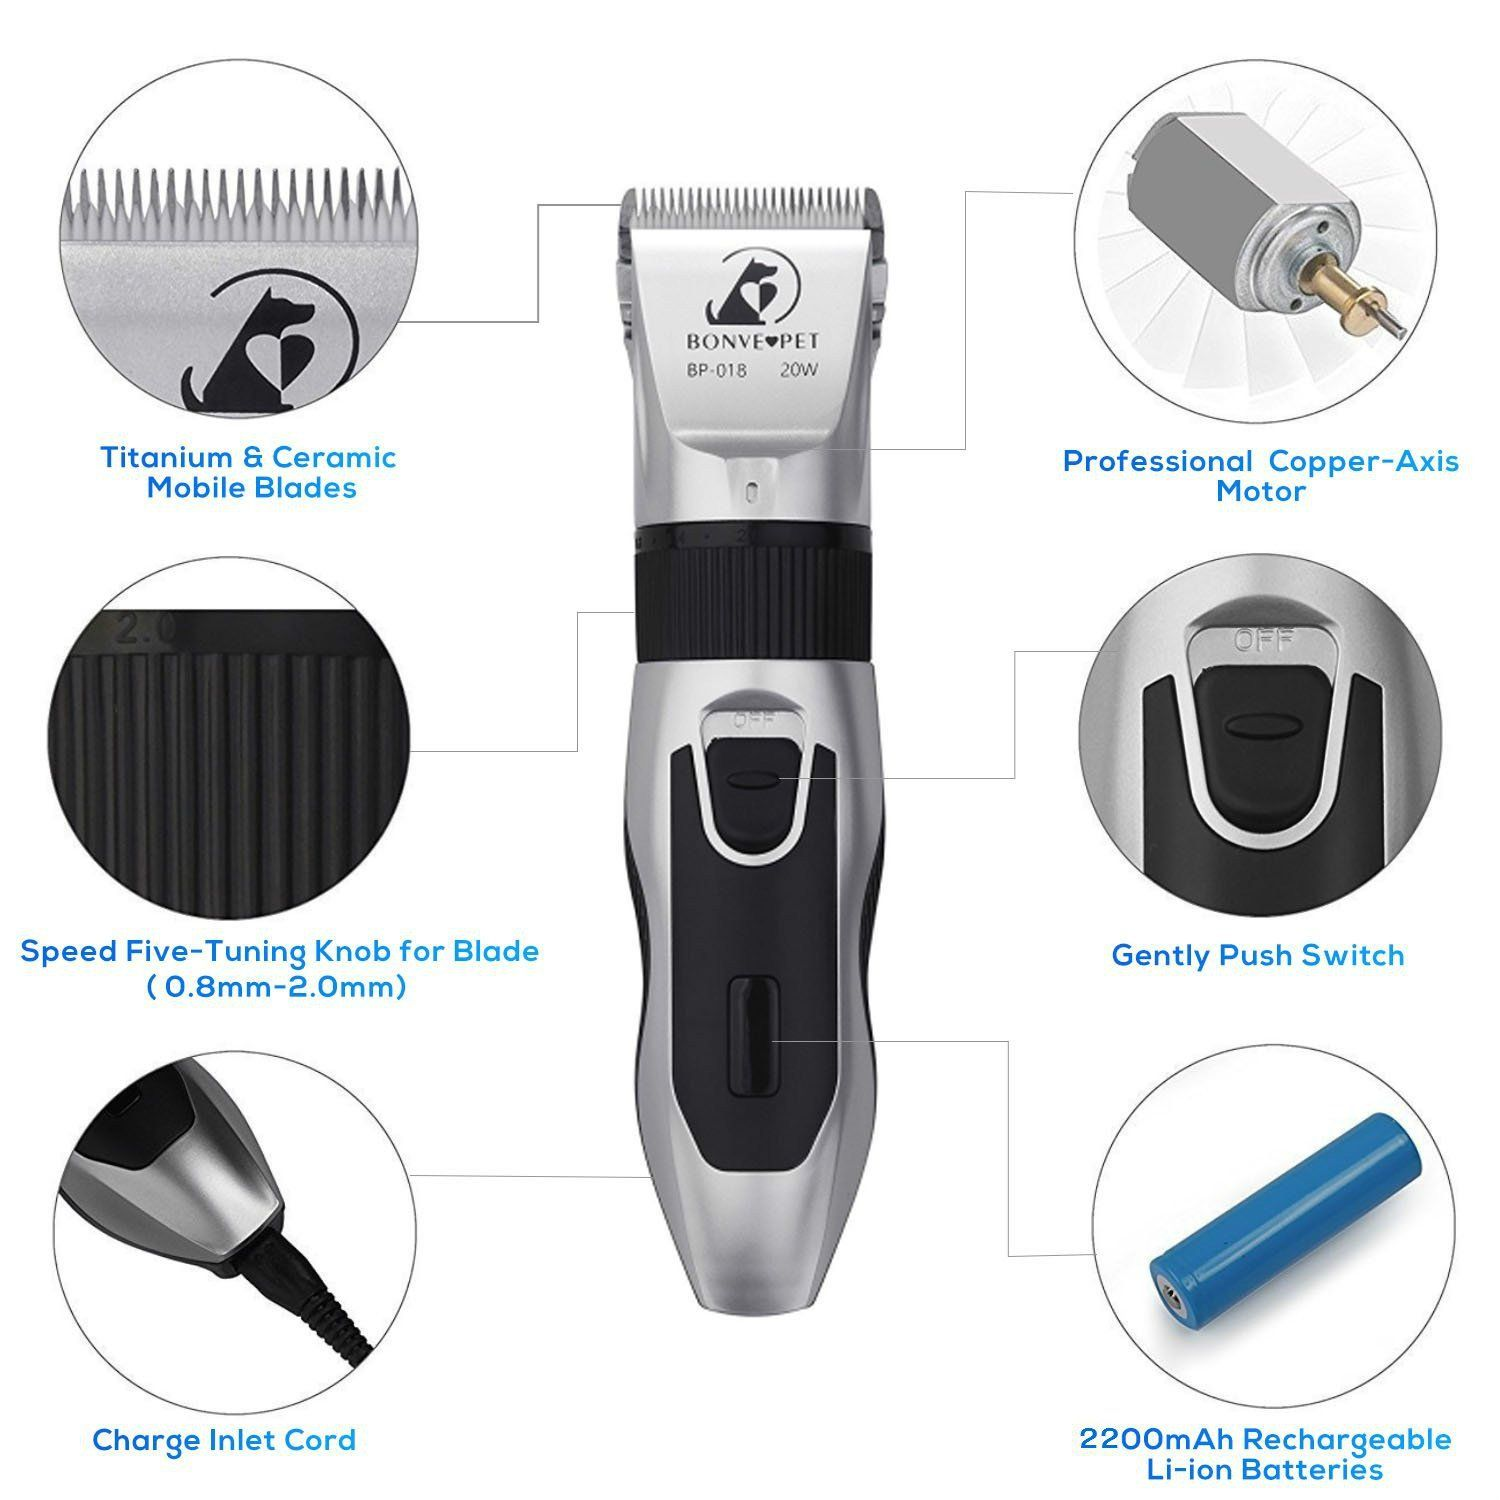 Top 5 Best Dog Clippers for Grooming [2020 Reviews] Dog